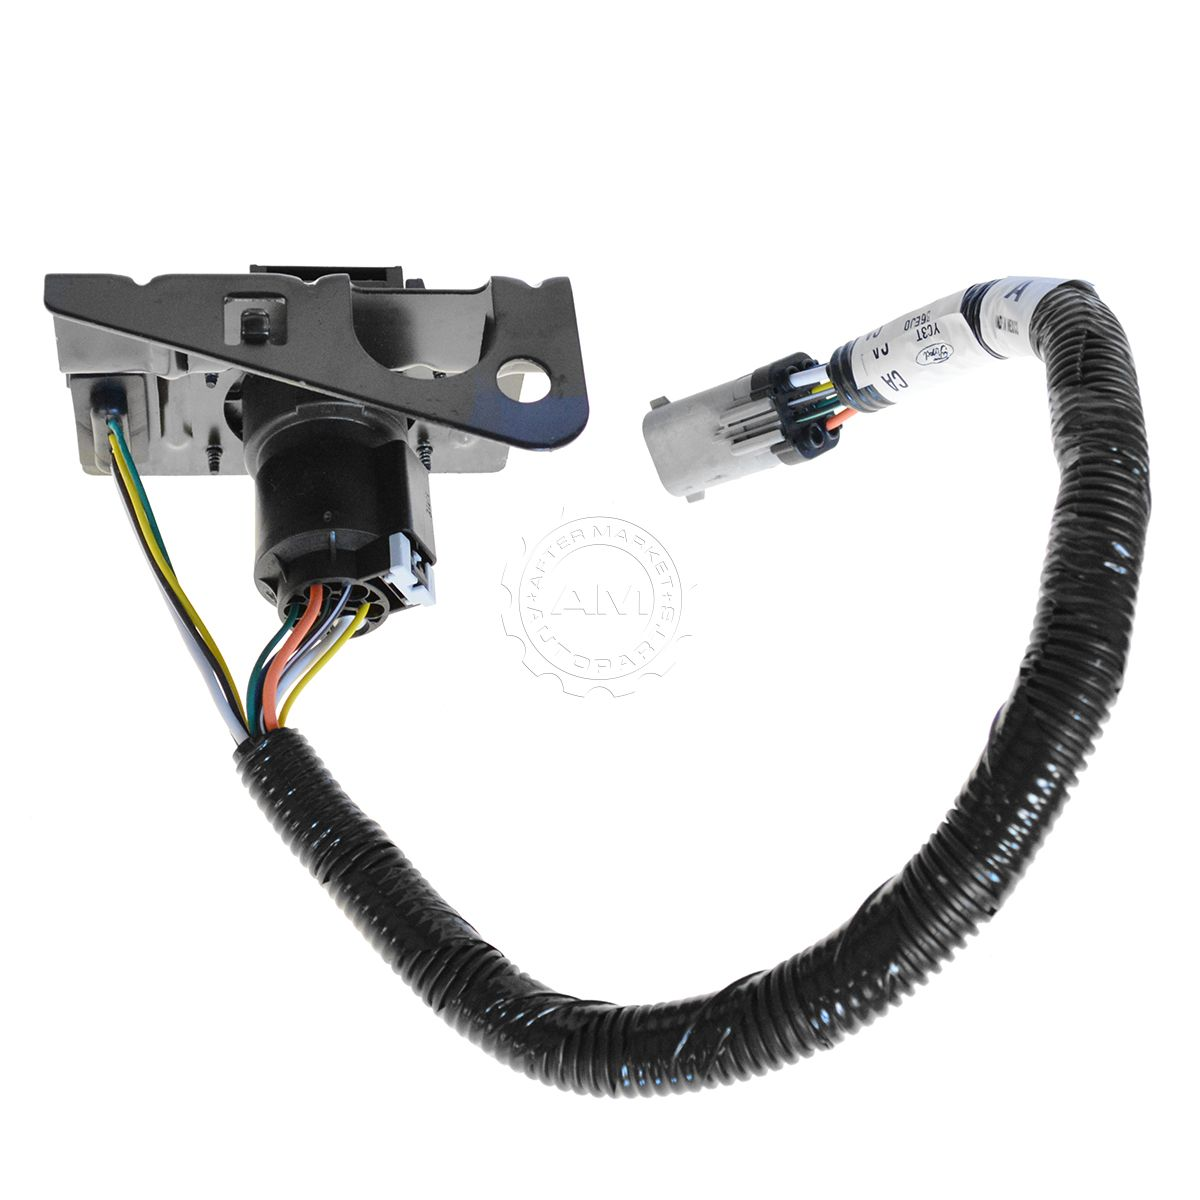 FORD 4 & 7 Pin Trailer Tow Wiring Harness w/Plug & Bracket for F250 ...